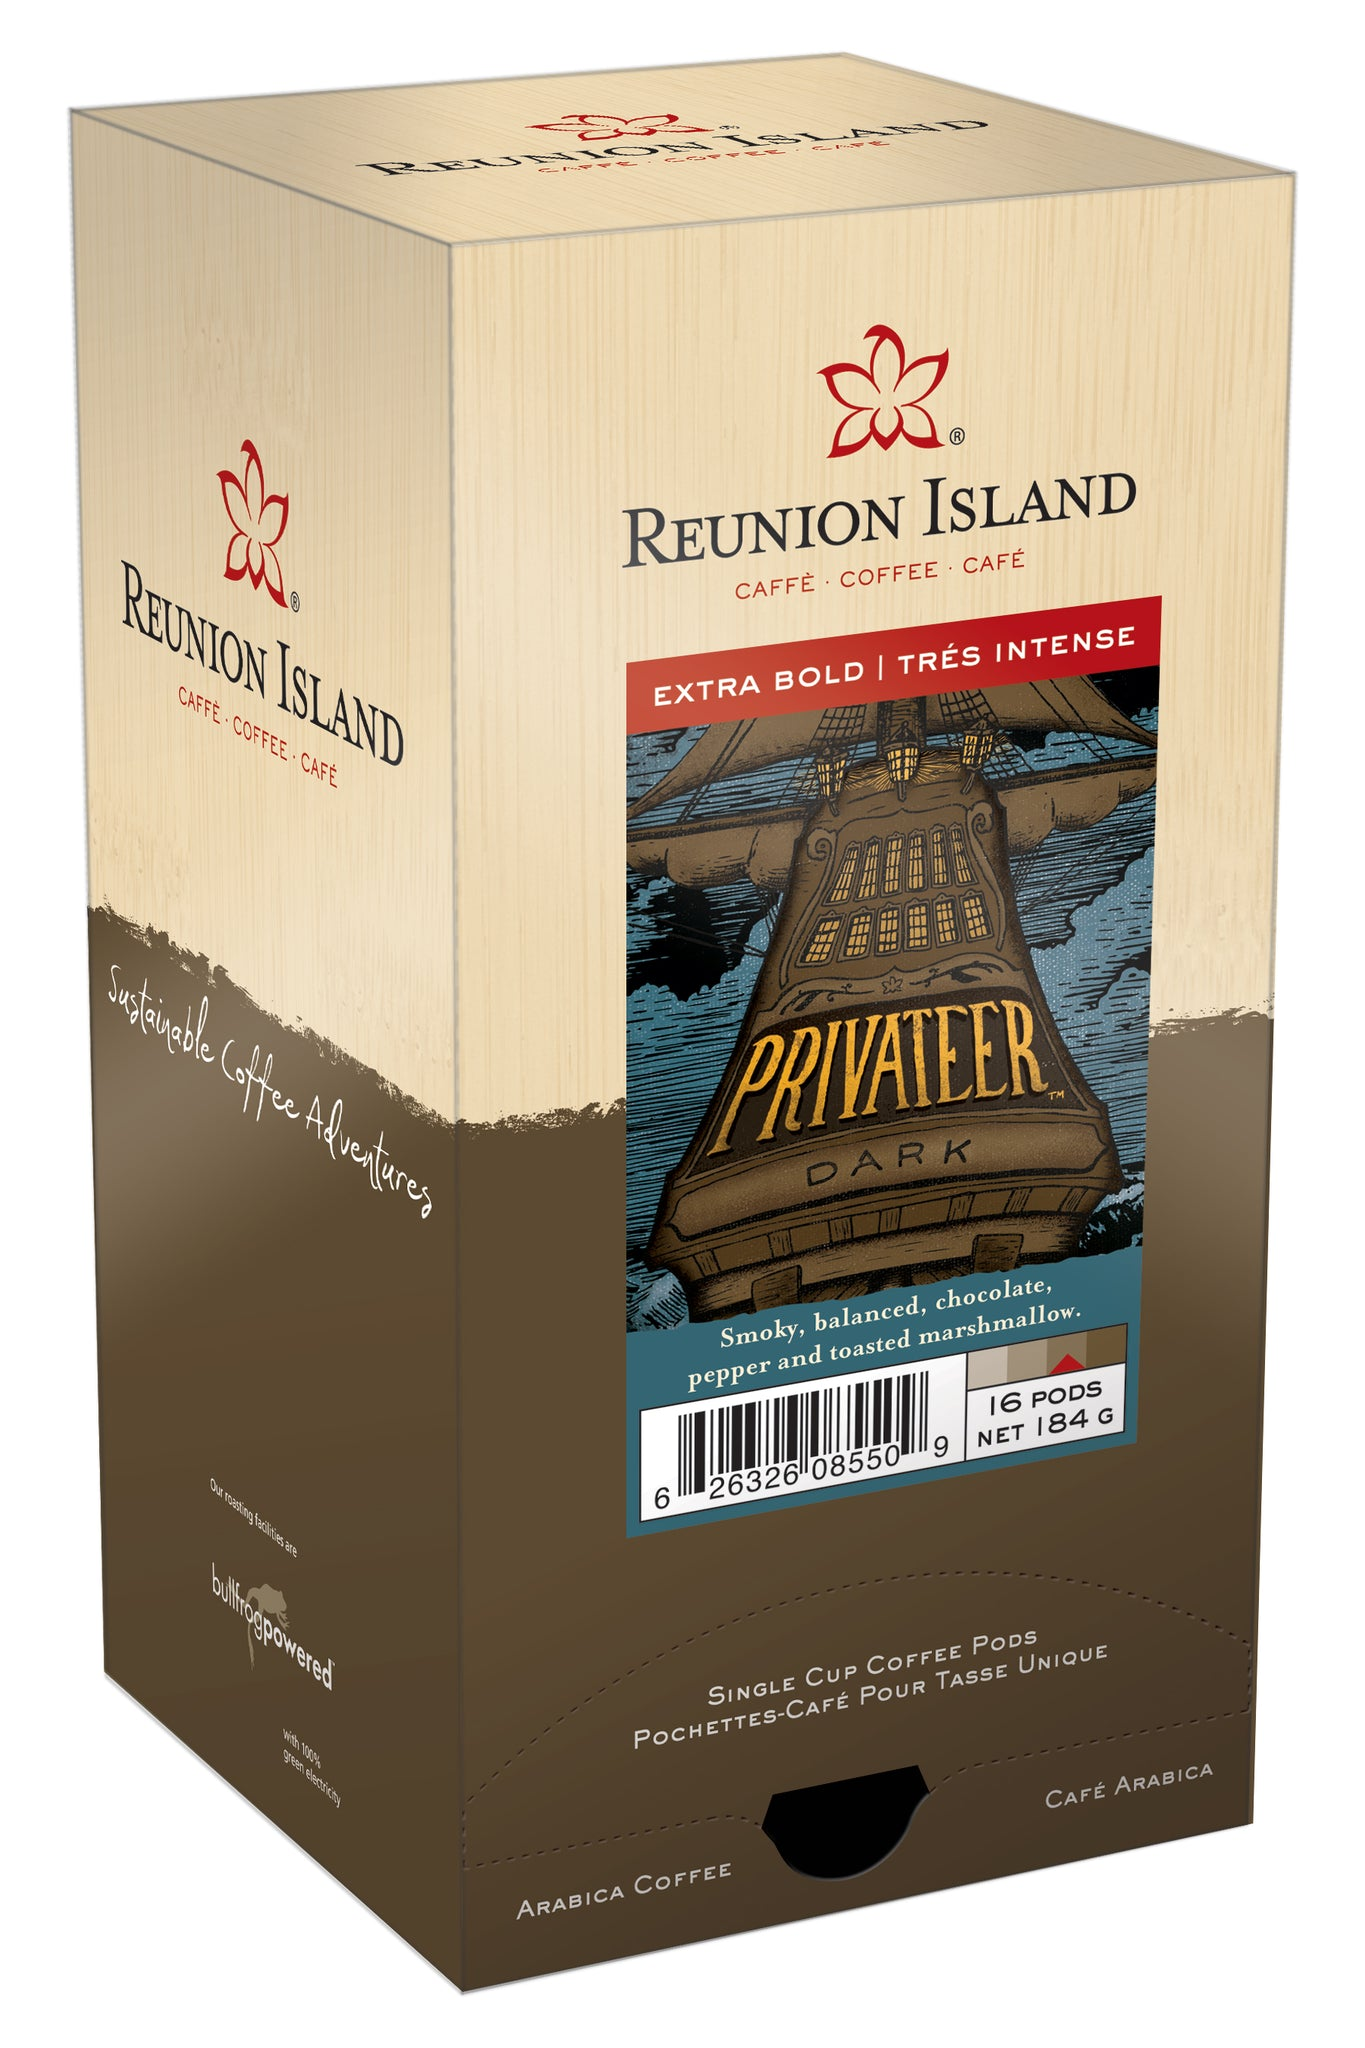 Reunion Island Coffee Pods -Privateer Dark - 11grams